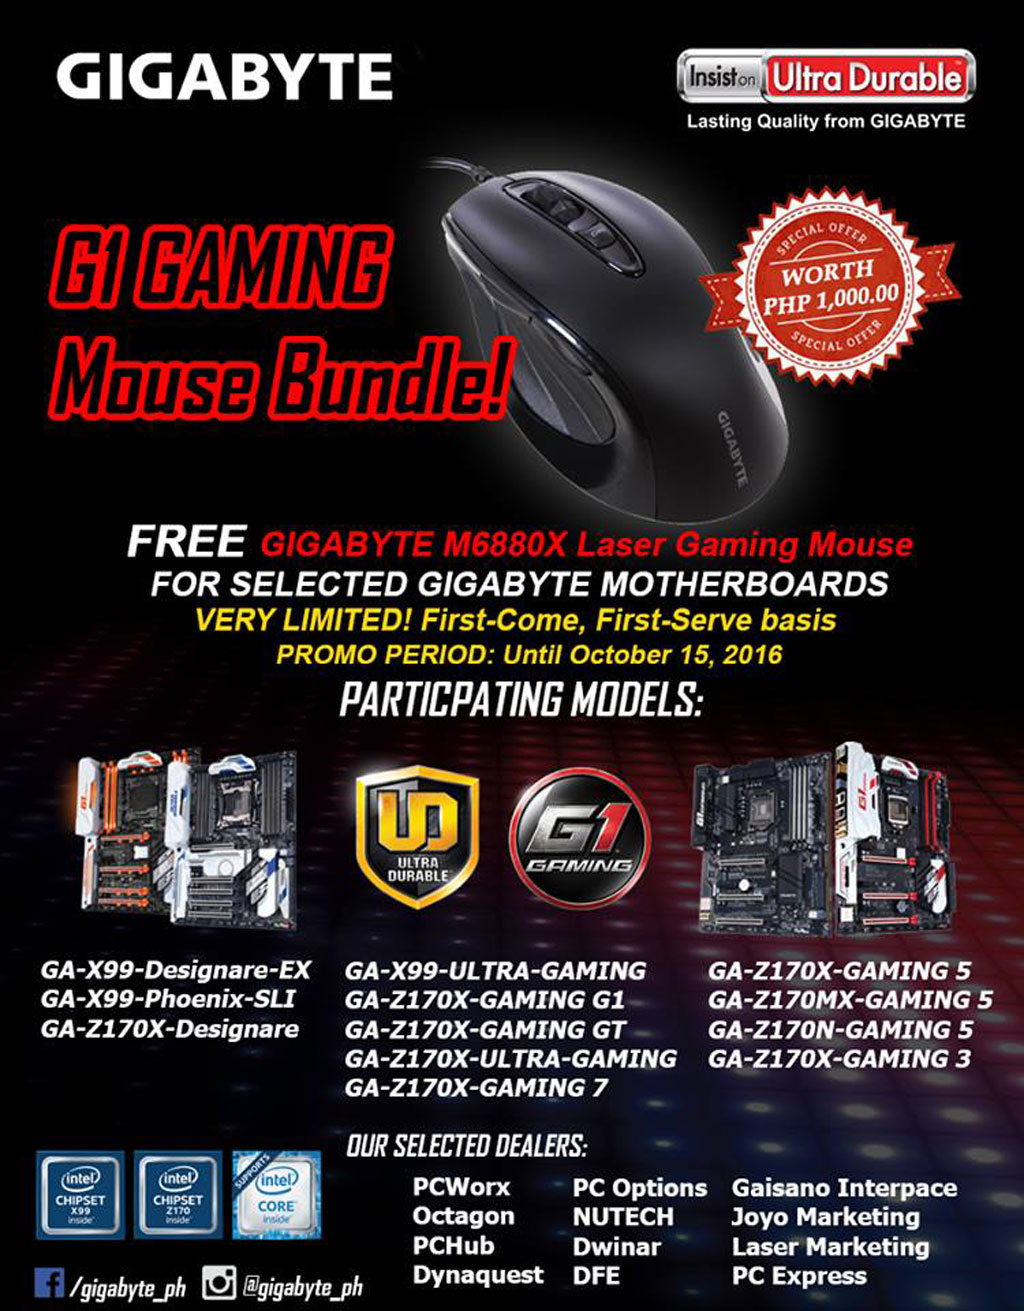 GIGABYTE G1 Mouse Bundle